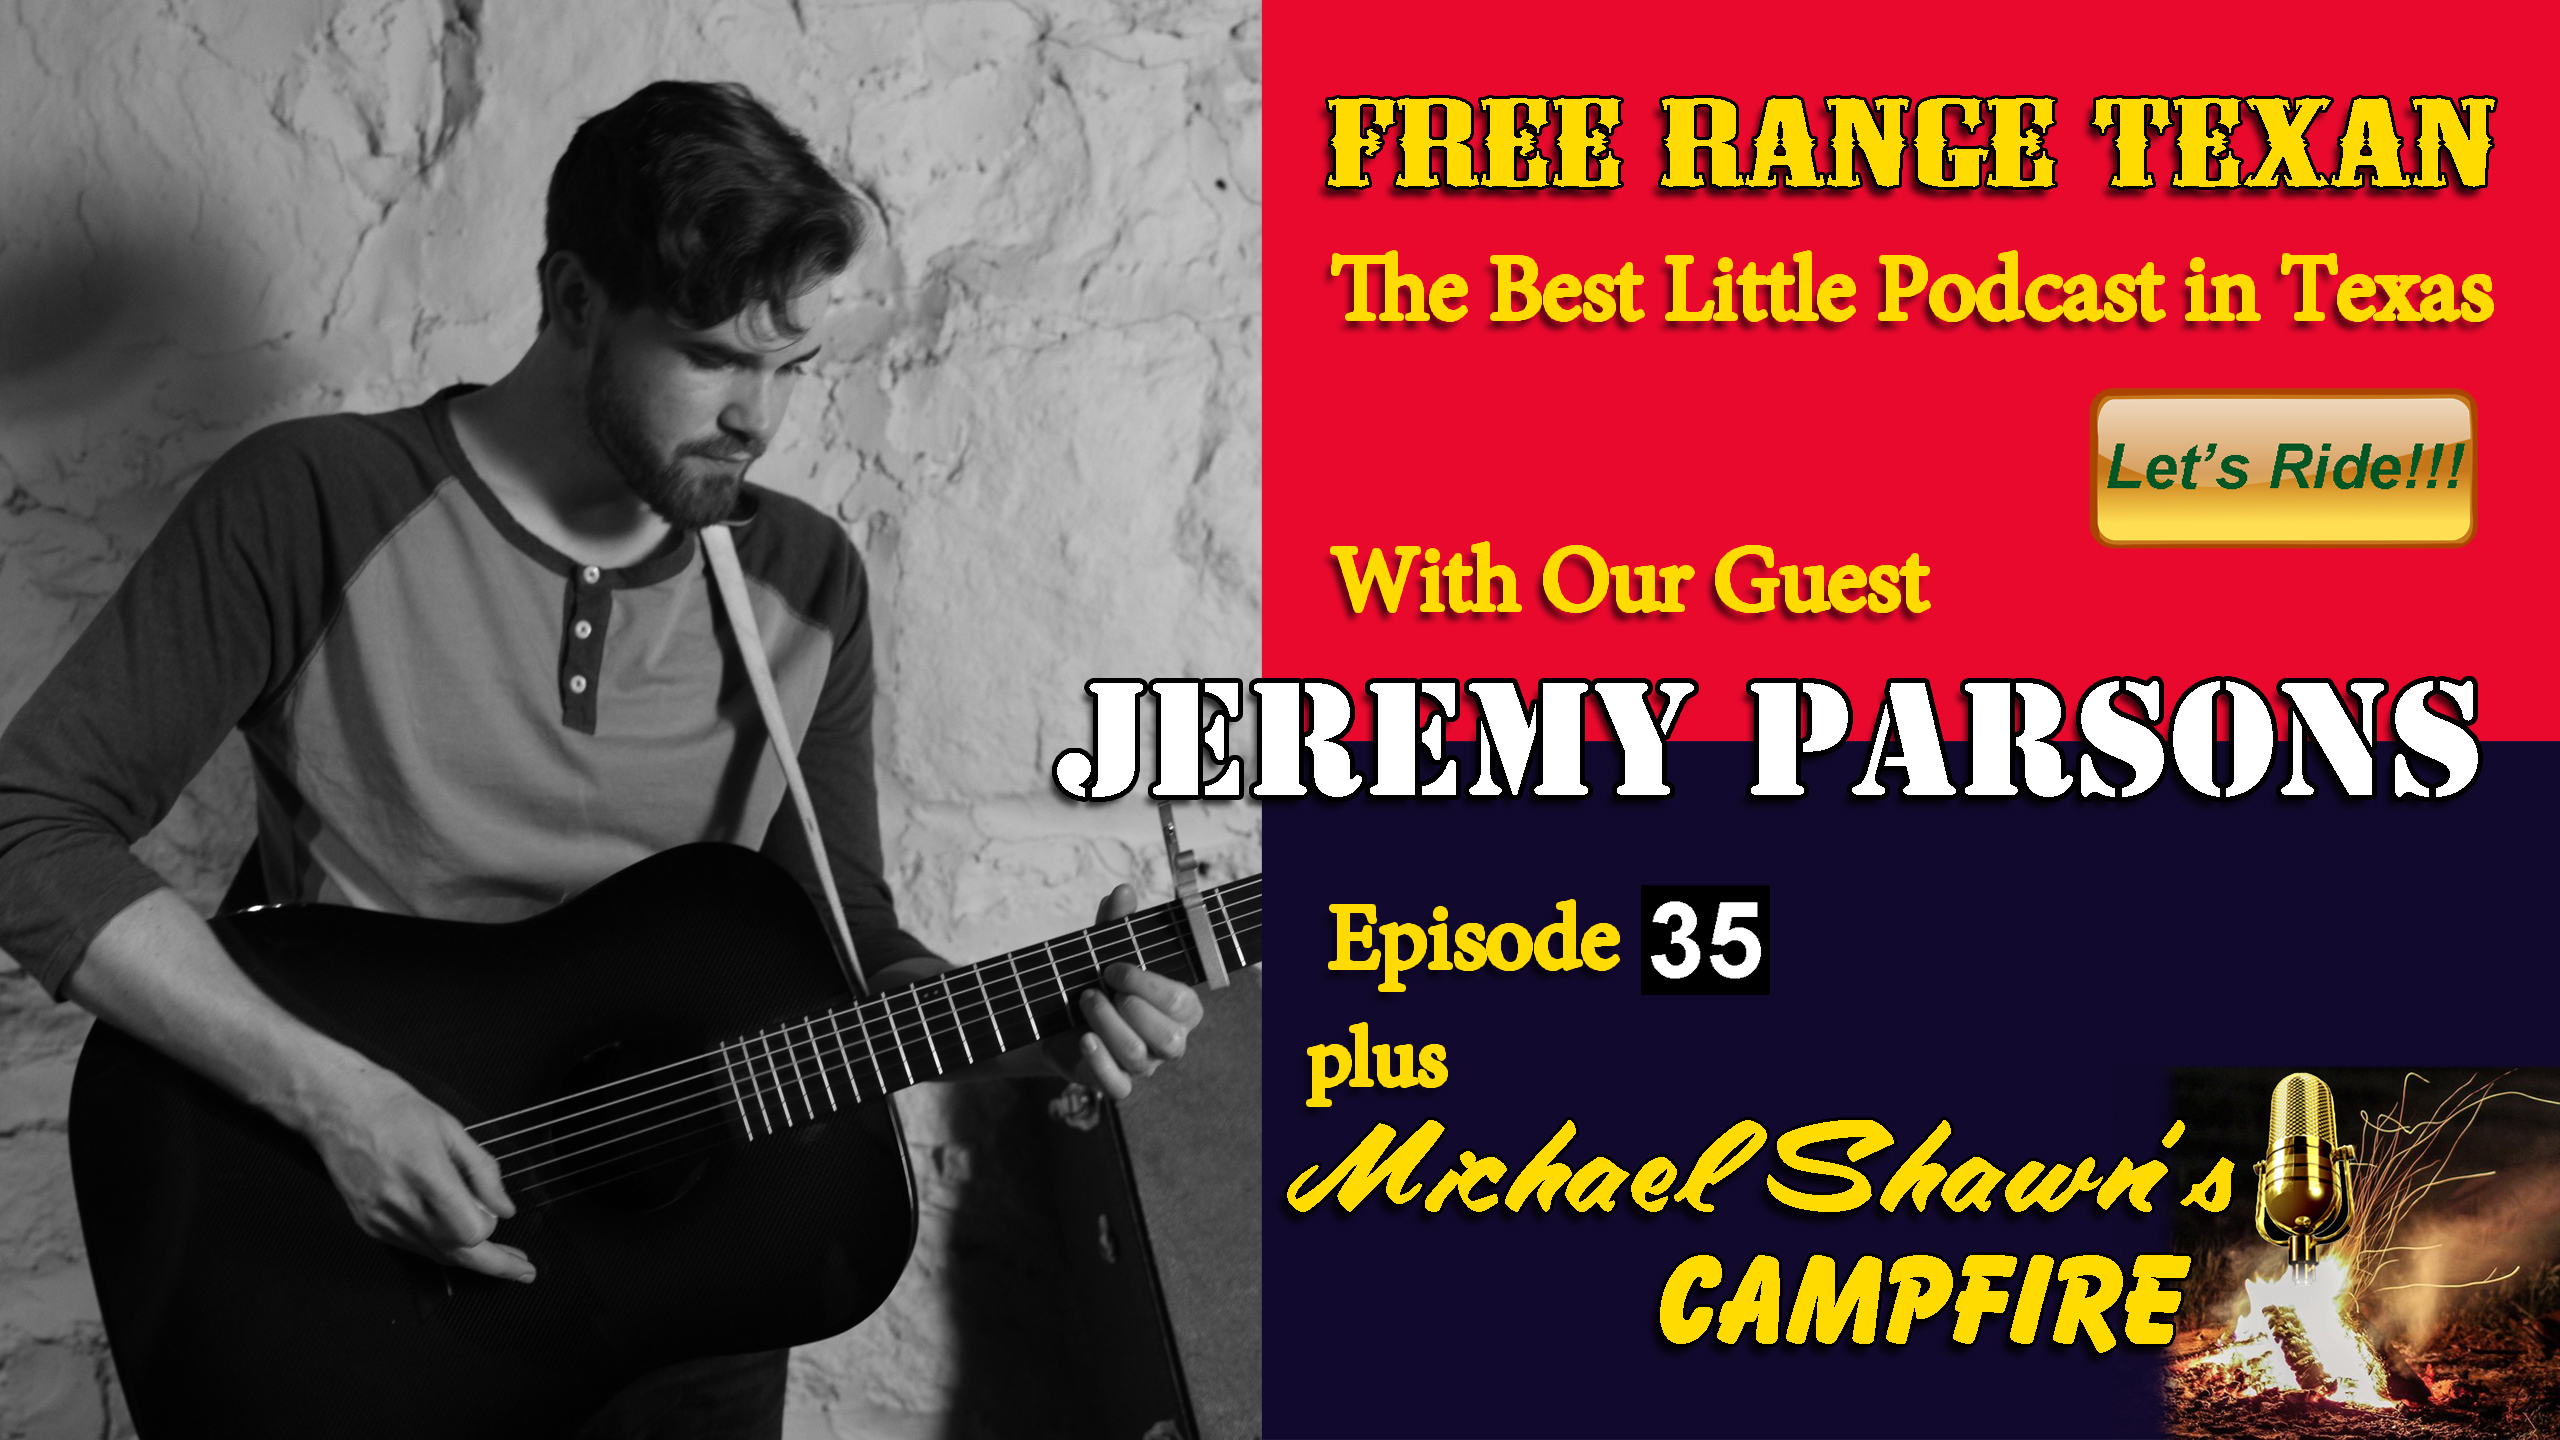 Free Range Texan Episode 35